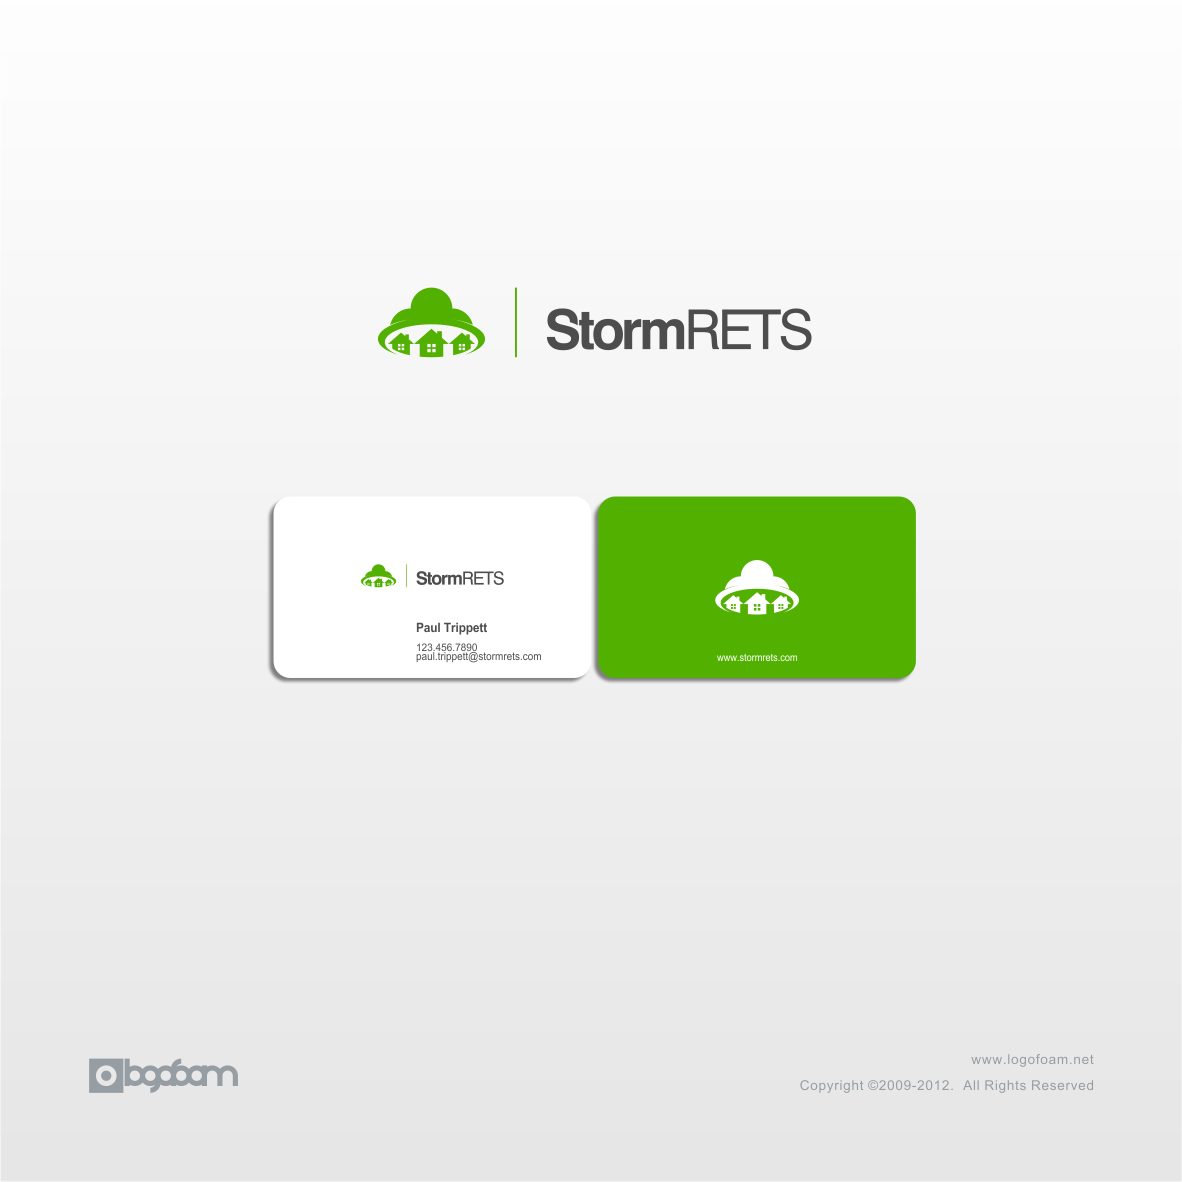 New logo wanted for StormRETS